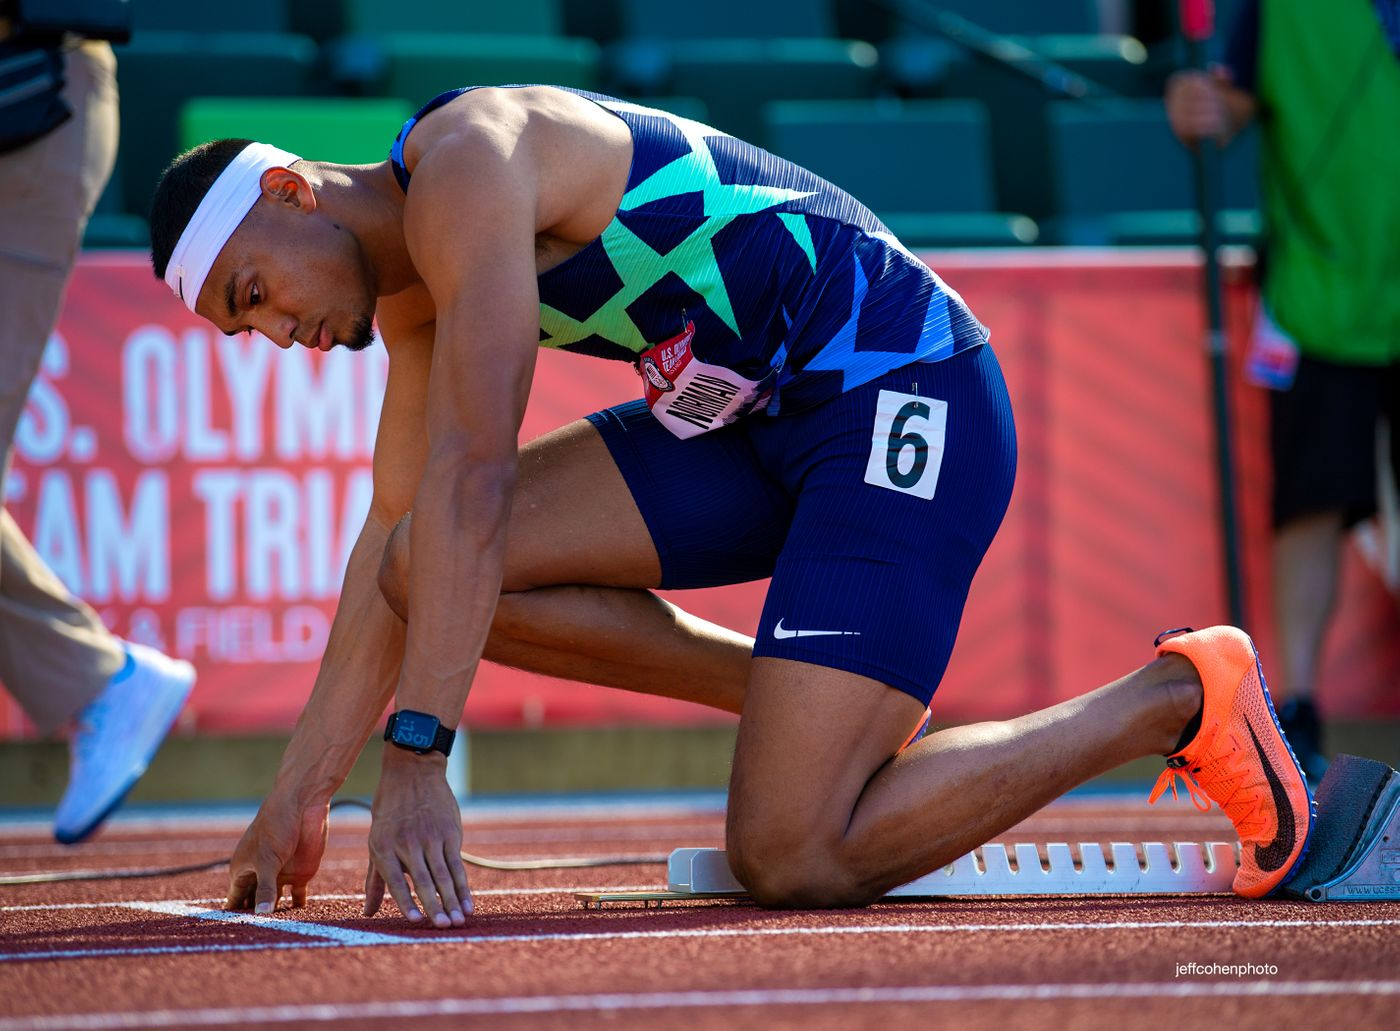 norman-400m-2021-US-Oly-Trials-day-11417-jeff-cohen-photo--web.jpg